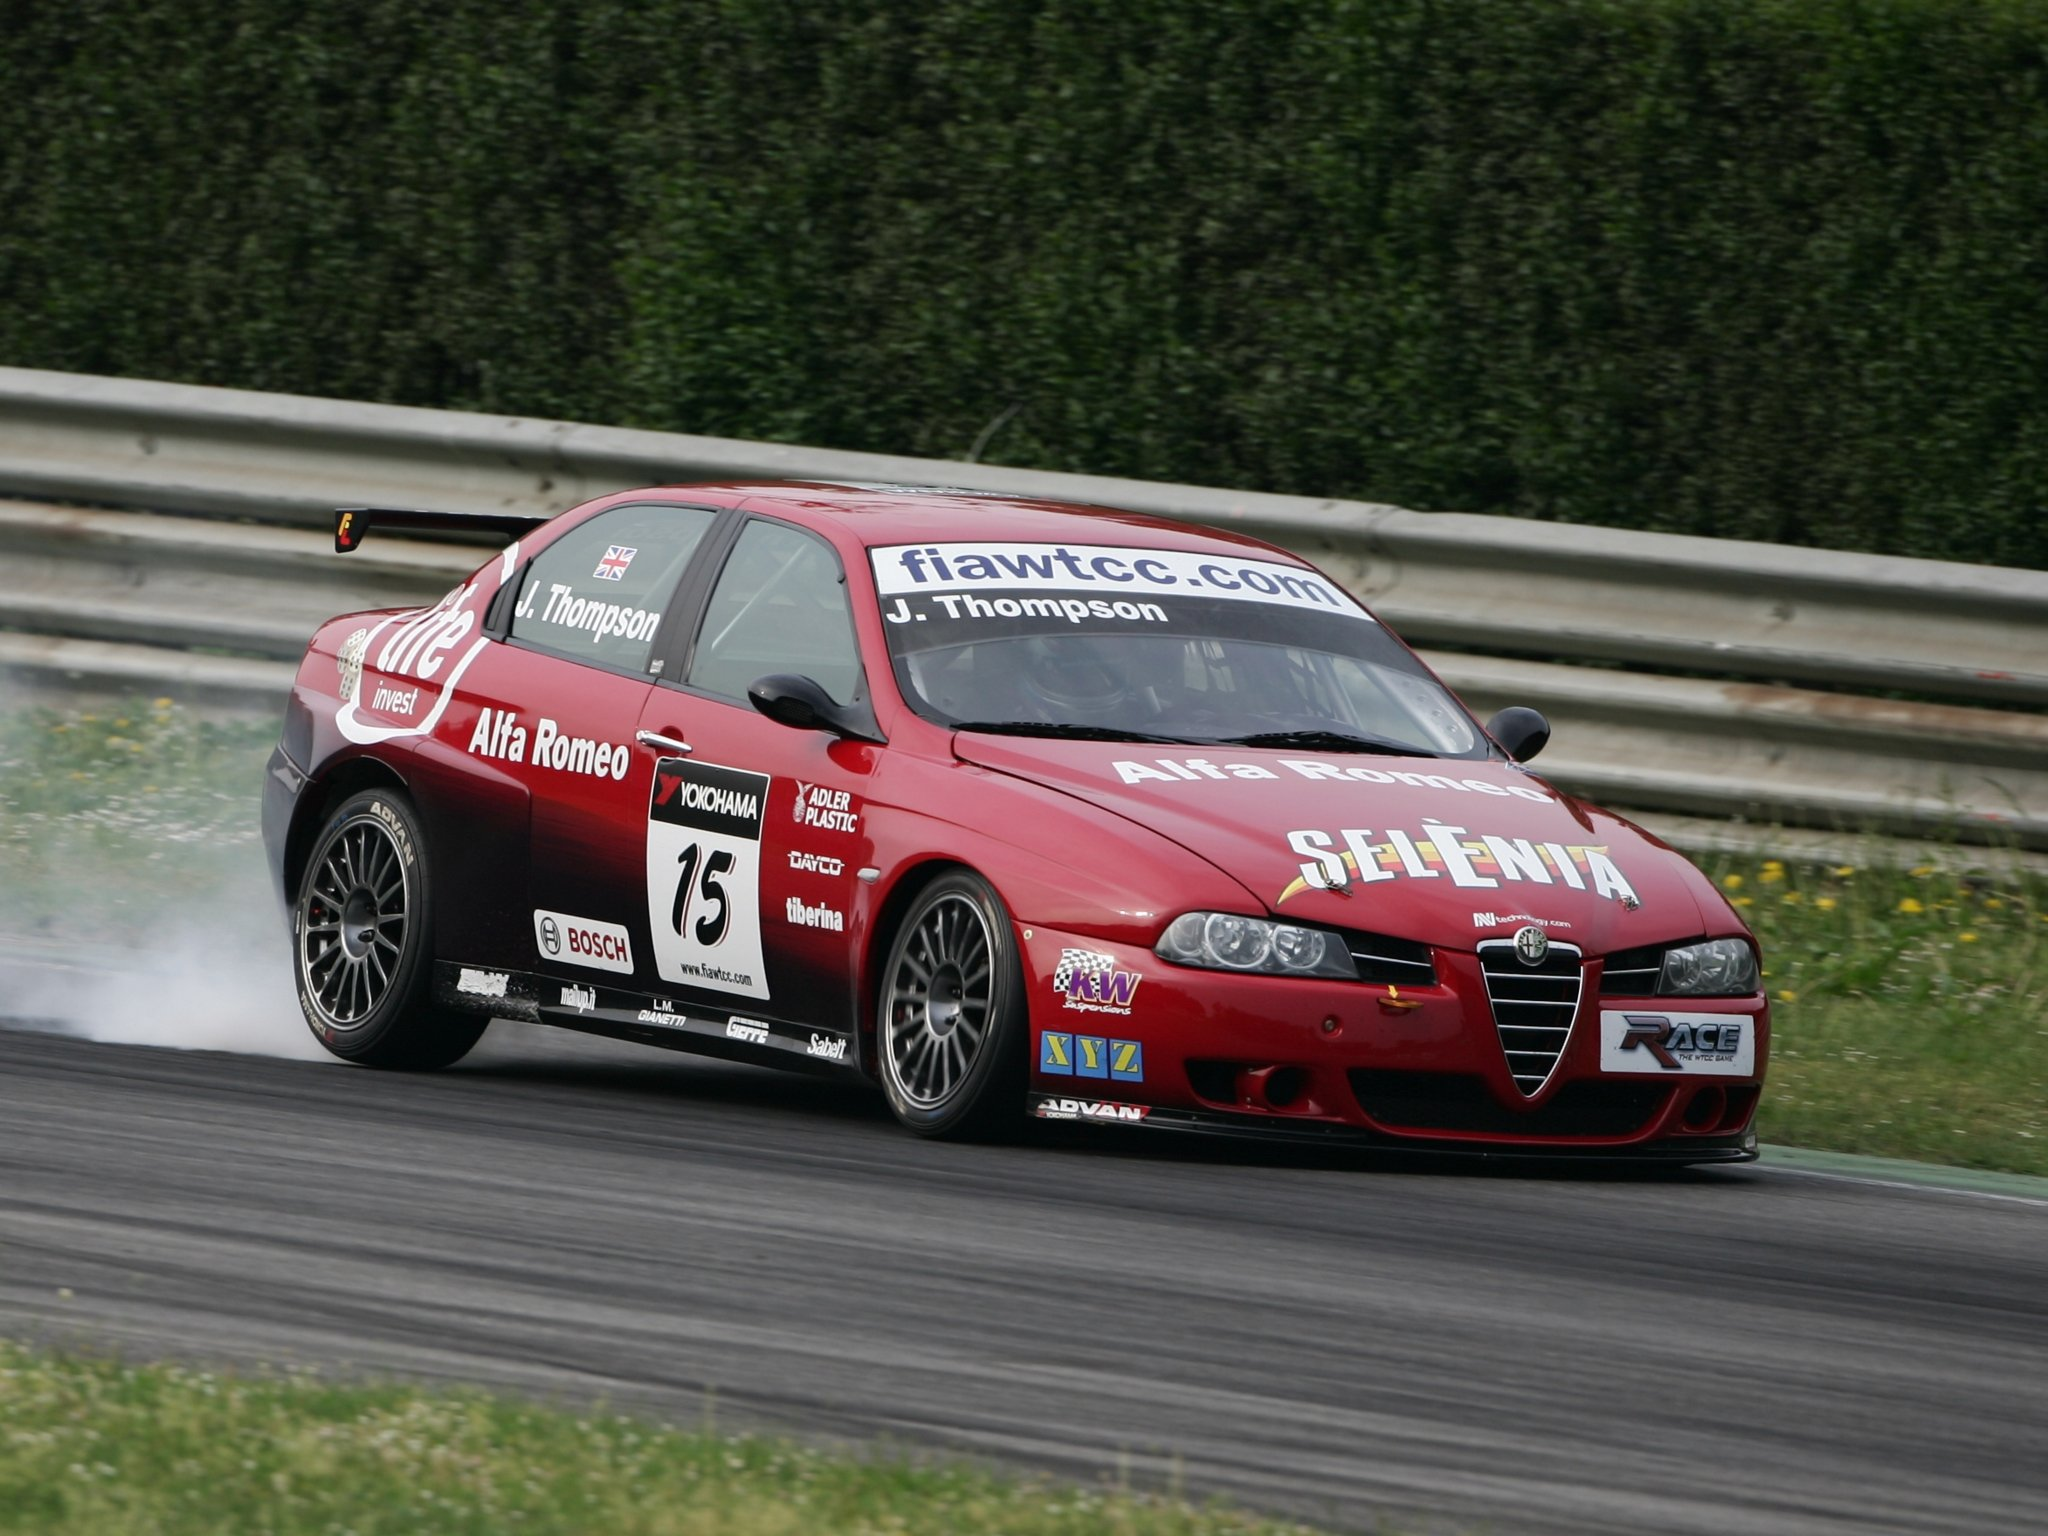 2048x1536 - WTCC Racing Wallpapers 37